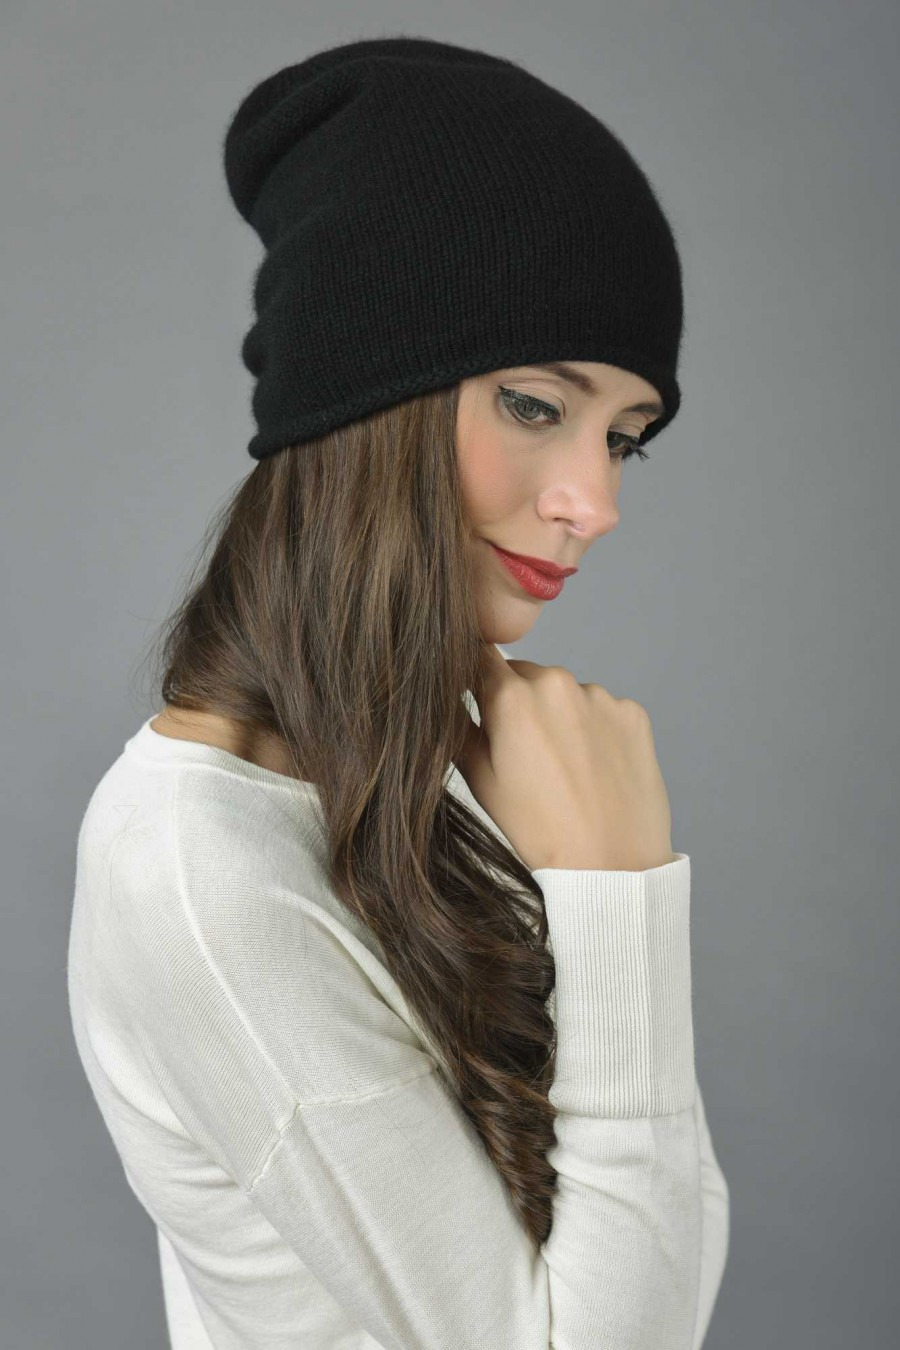 d6710f0c95cb9 Pure Cashmere Plain Knitted Slouchy Beanie Hat in Black